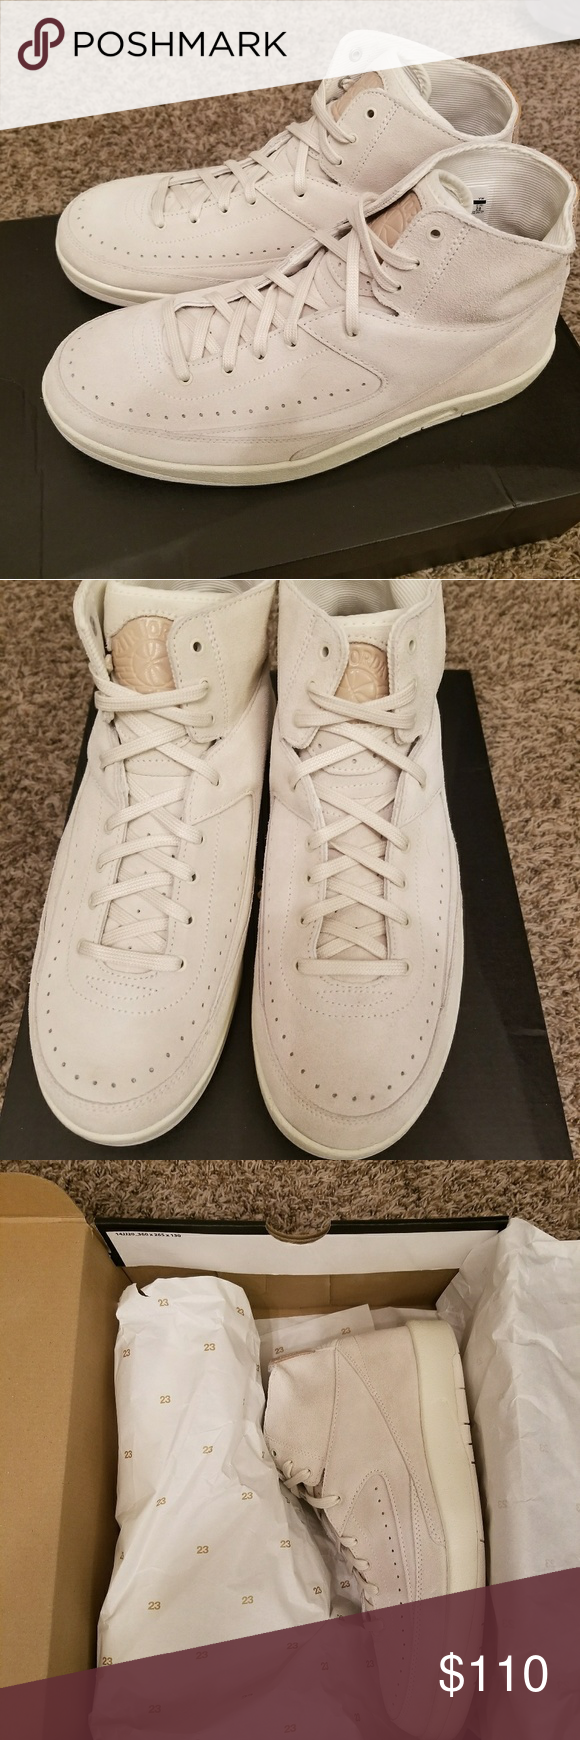 brand new cbae9 0a21b New Air Jordan 2 Retro Decon 898521-100 Size 10 Air Jordan 2 ...